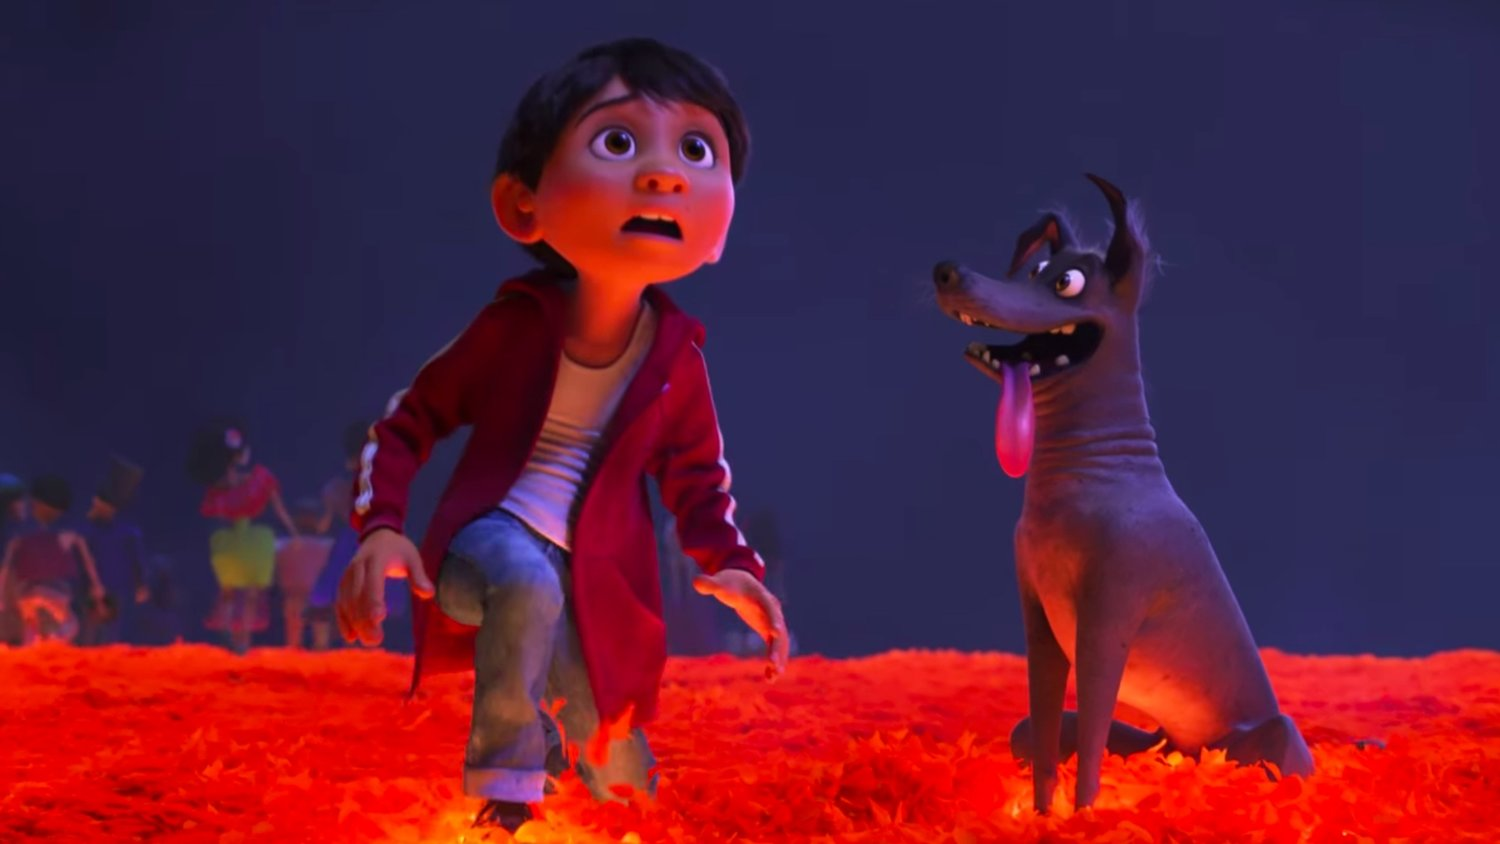 Pixar Releases a Beautifully Charming Teaser Trailer for Their Next Film COCO